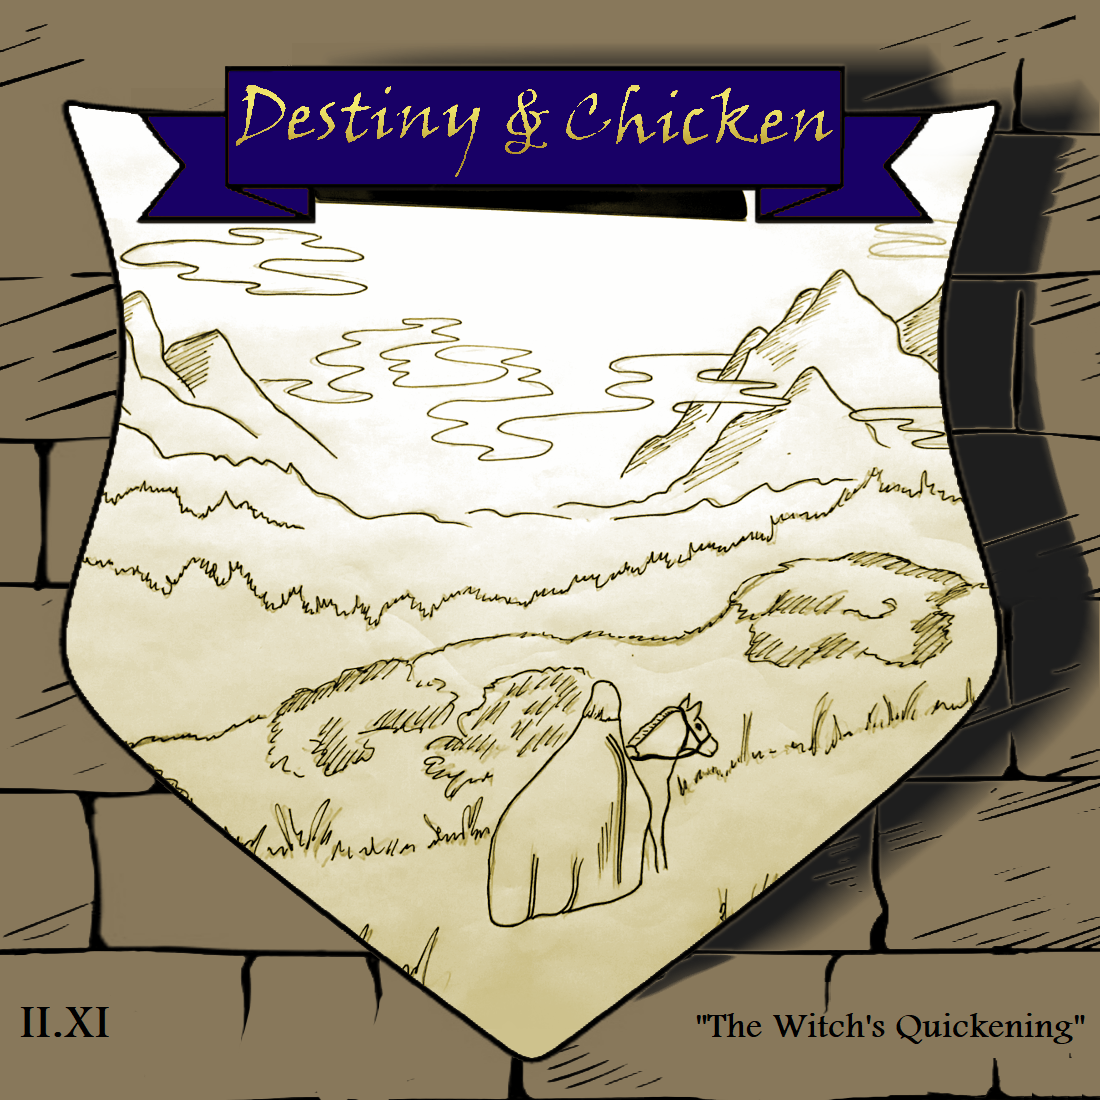 Episode II.XI - The Witch's Quickening